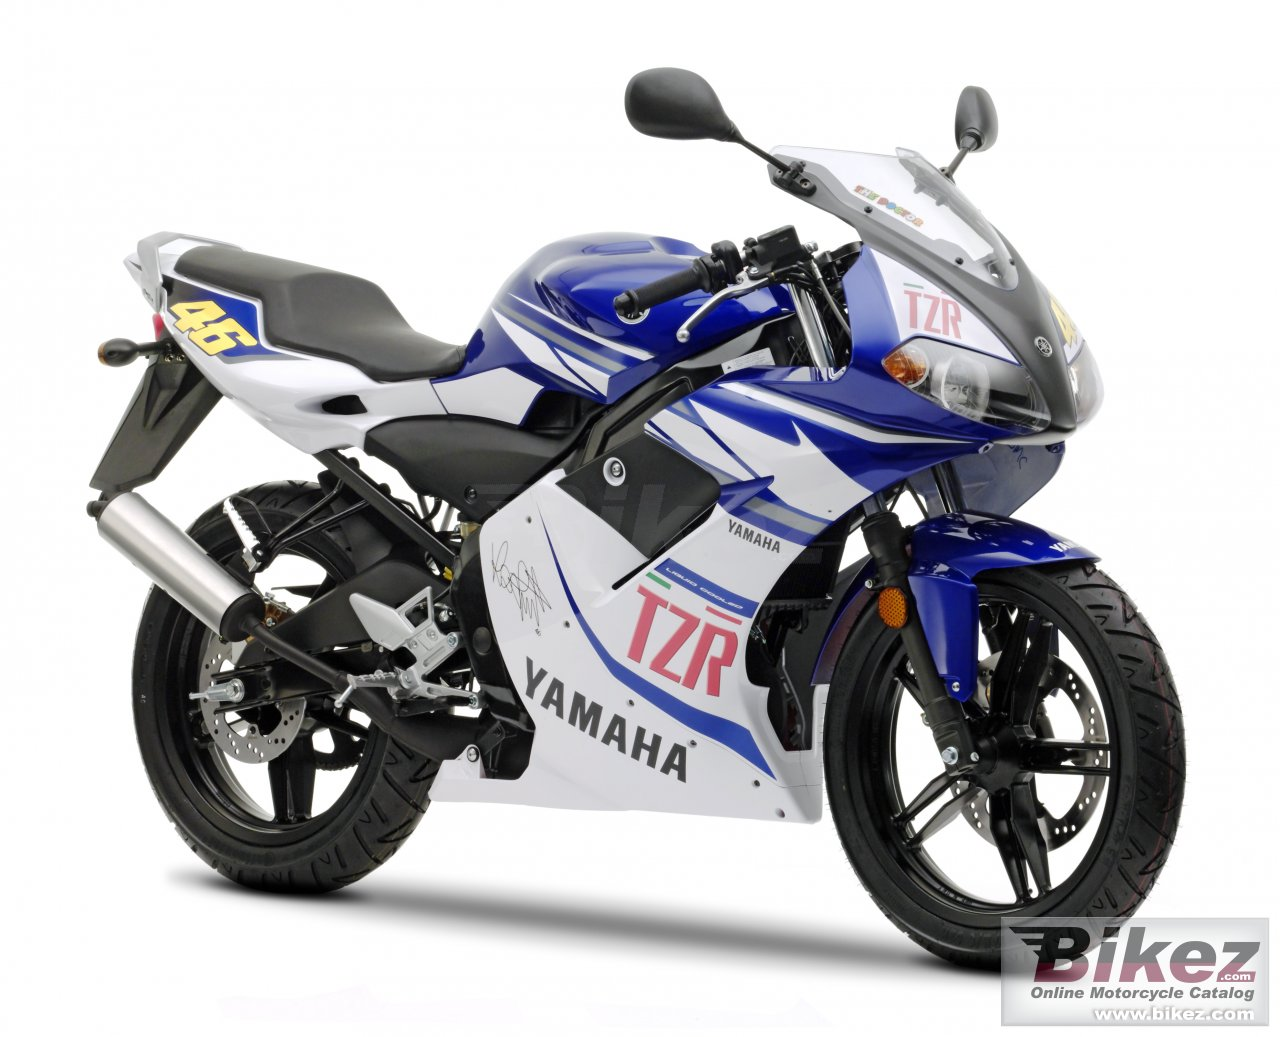 Big Yamaha tzr50 race replica picture and wallpaper from Bikez.com